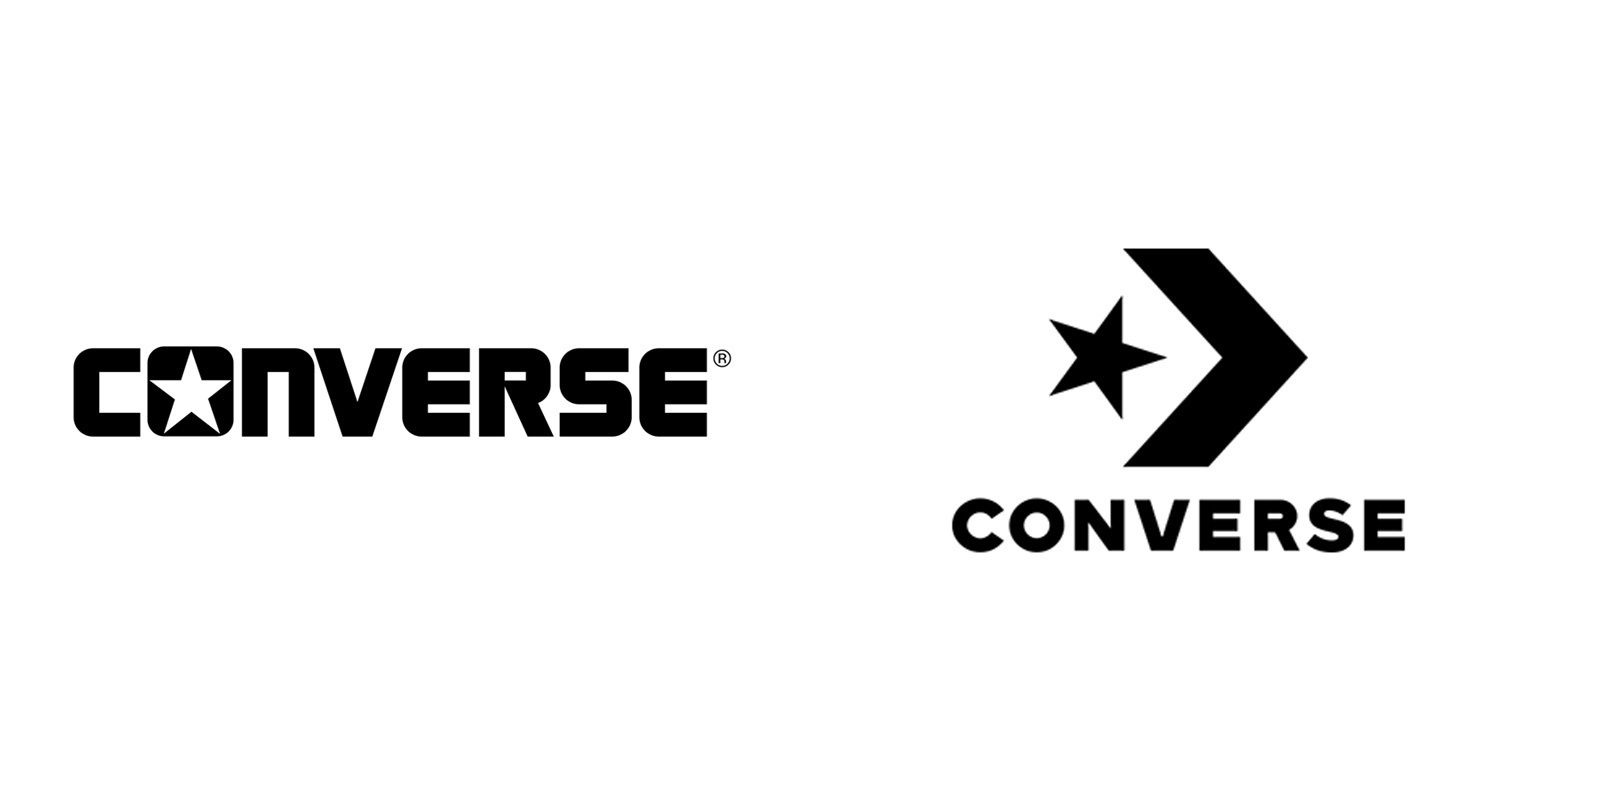 Converse before and after logos